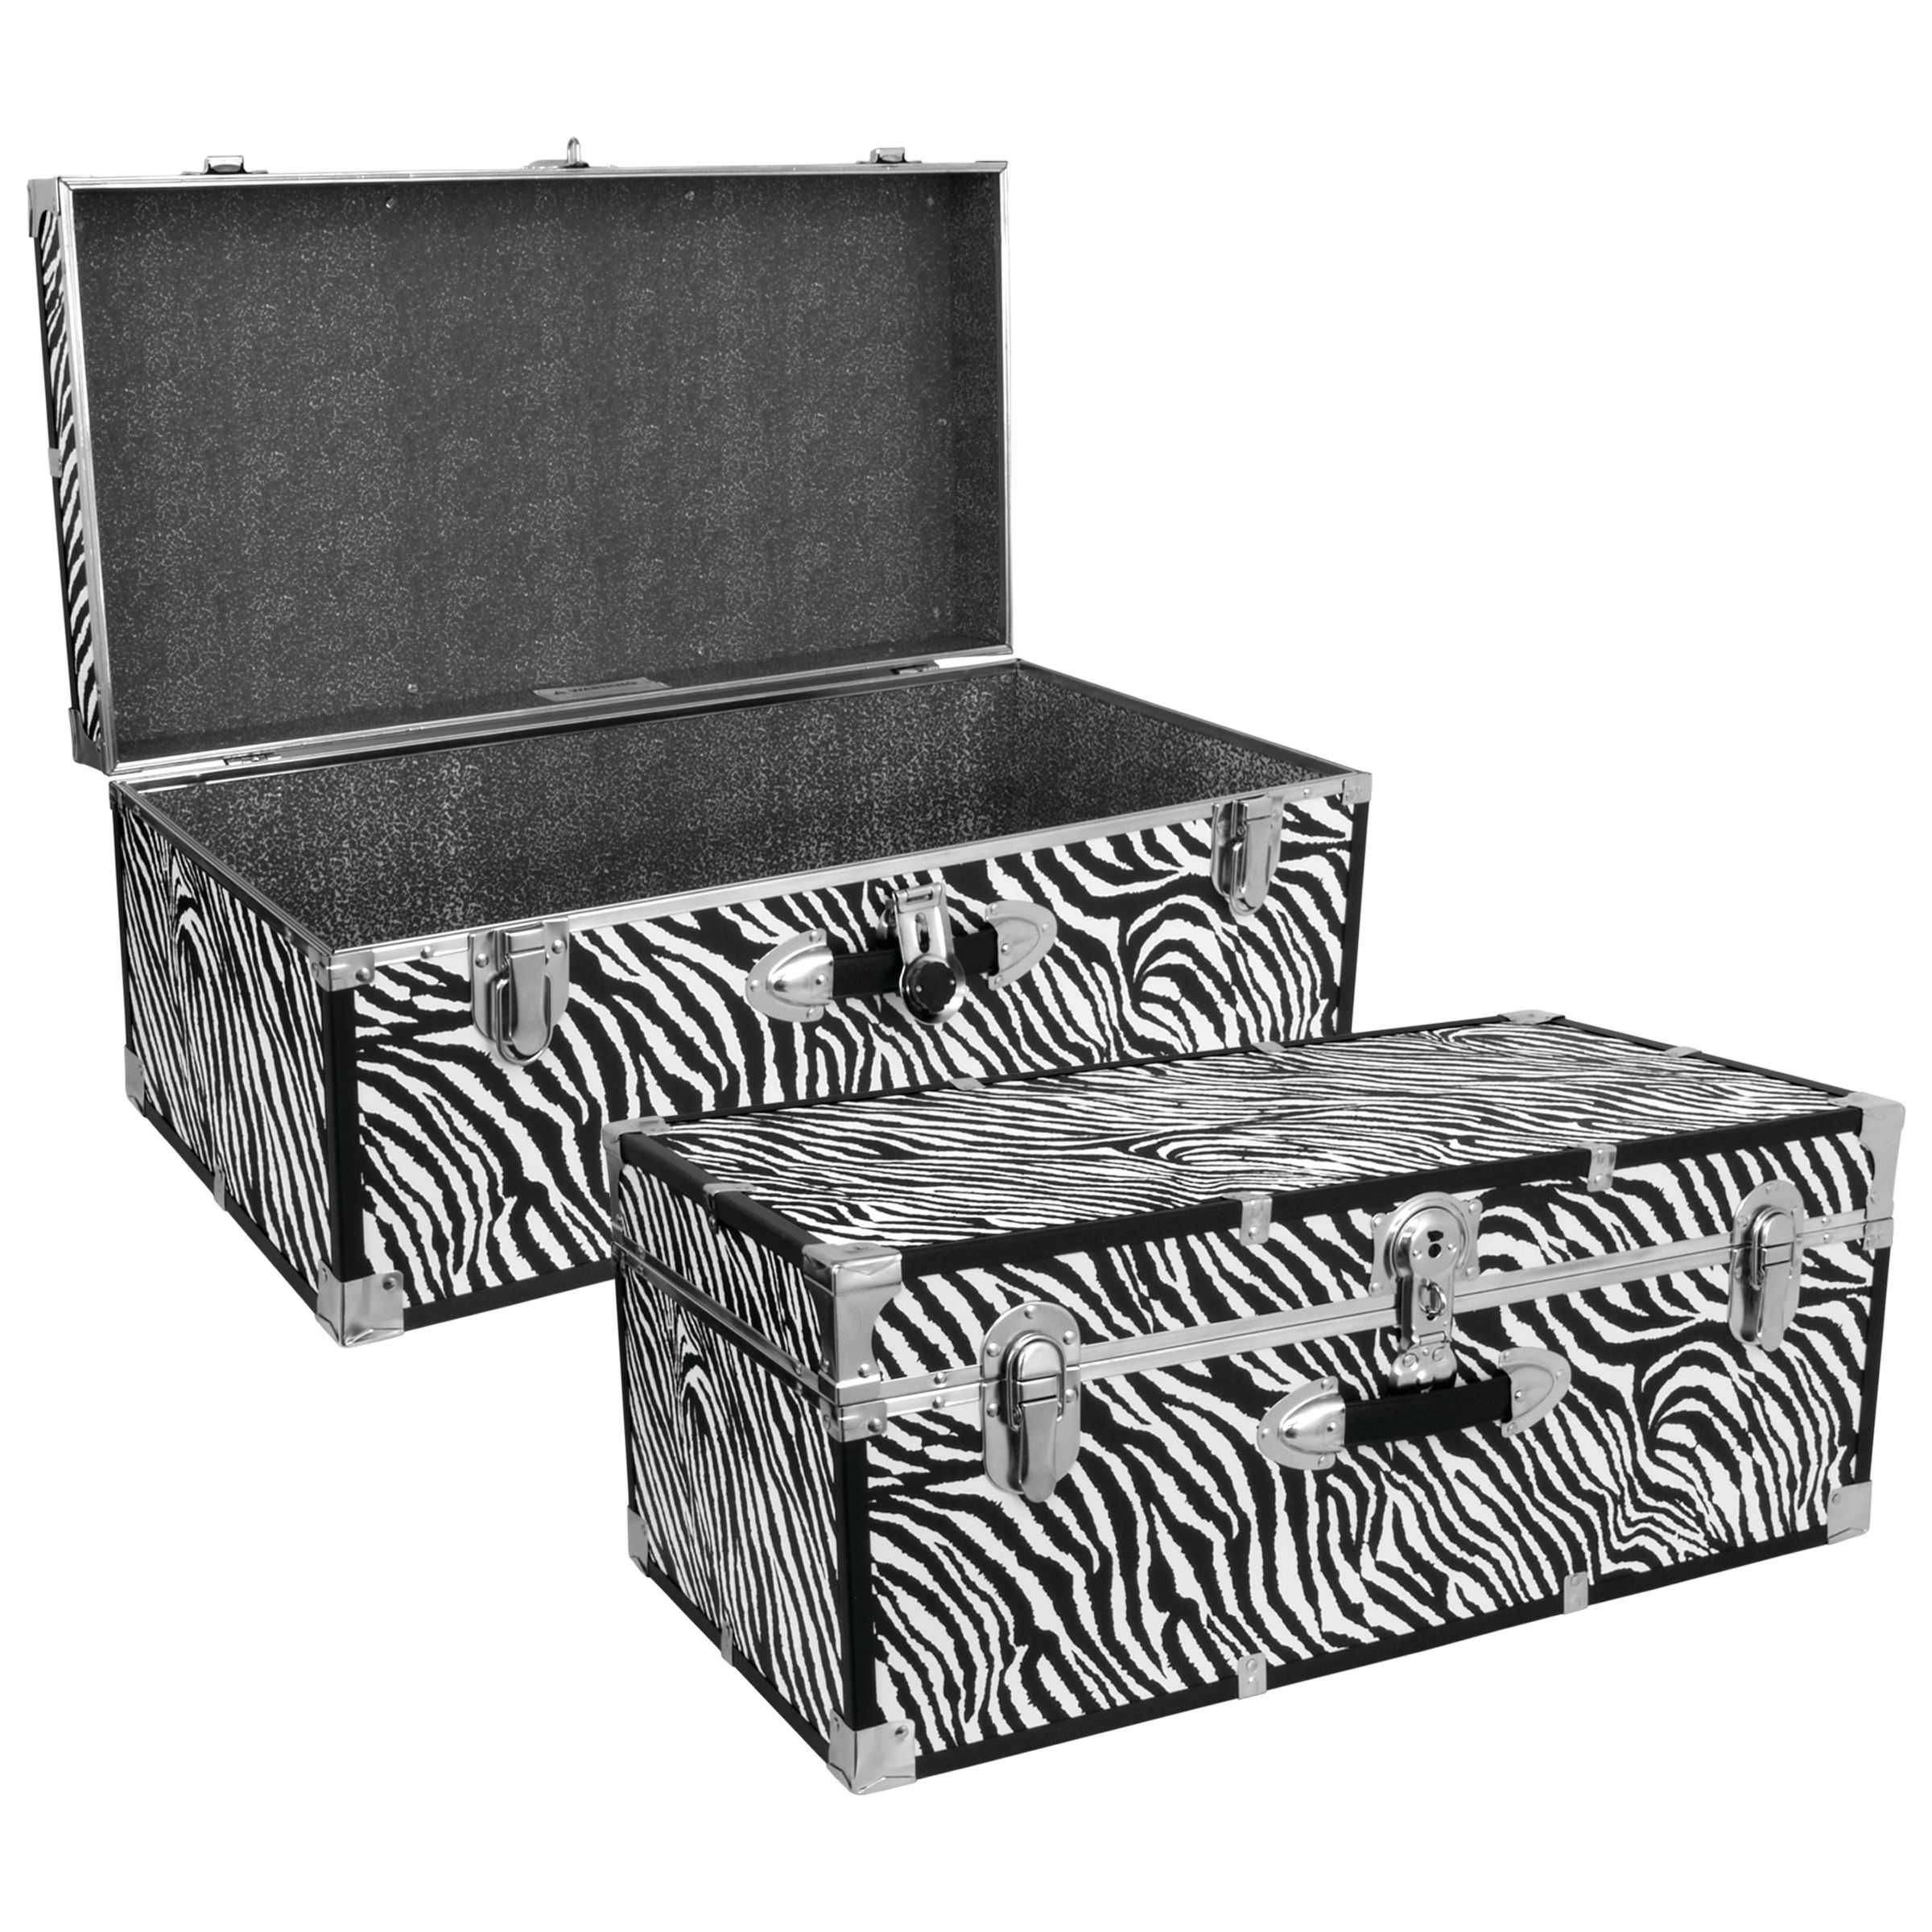 Seward Trunk 30-Inch Stackable Footlocker Trunk, Zebra